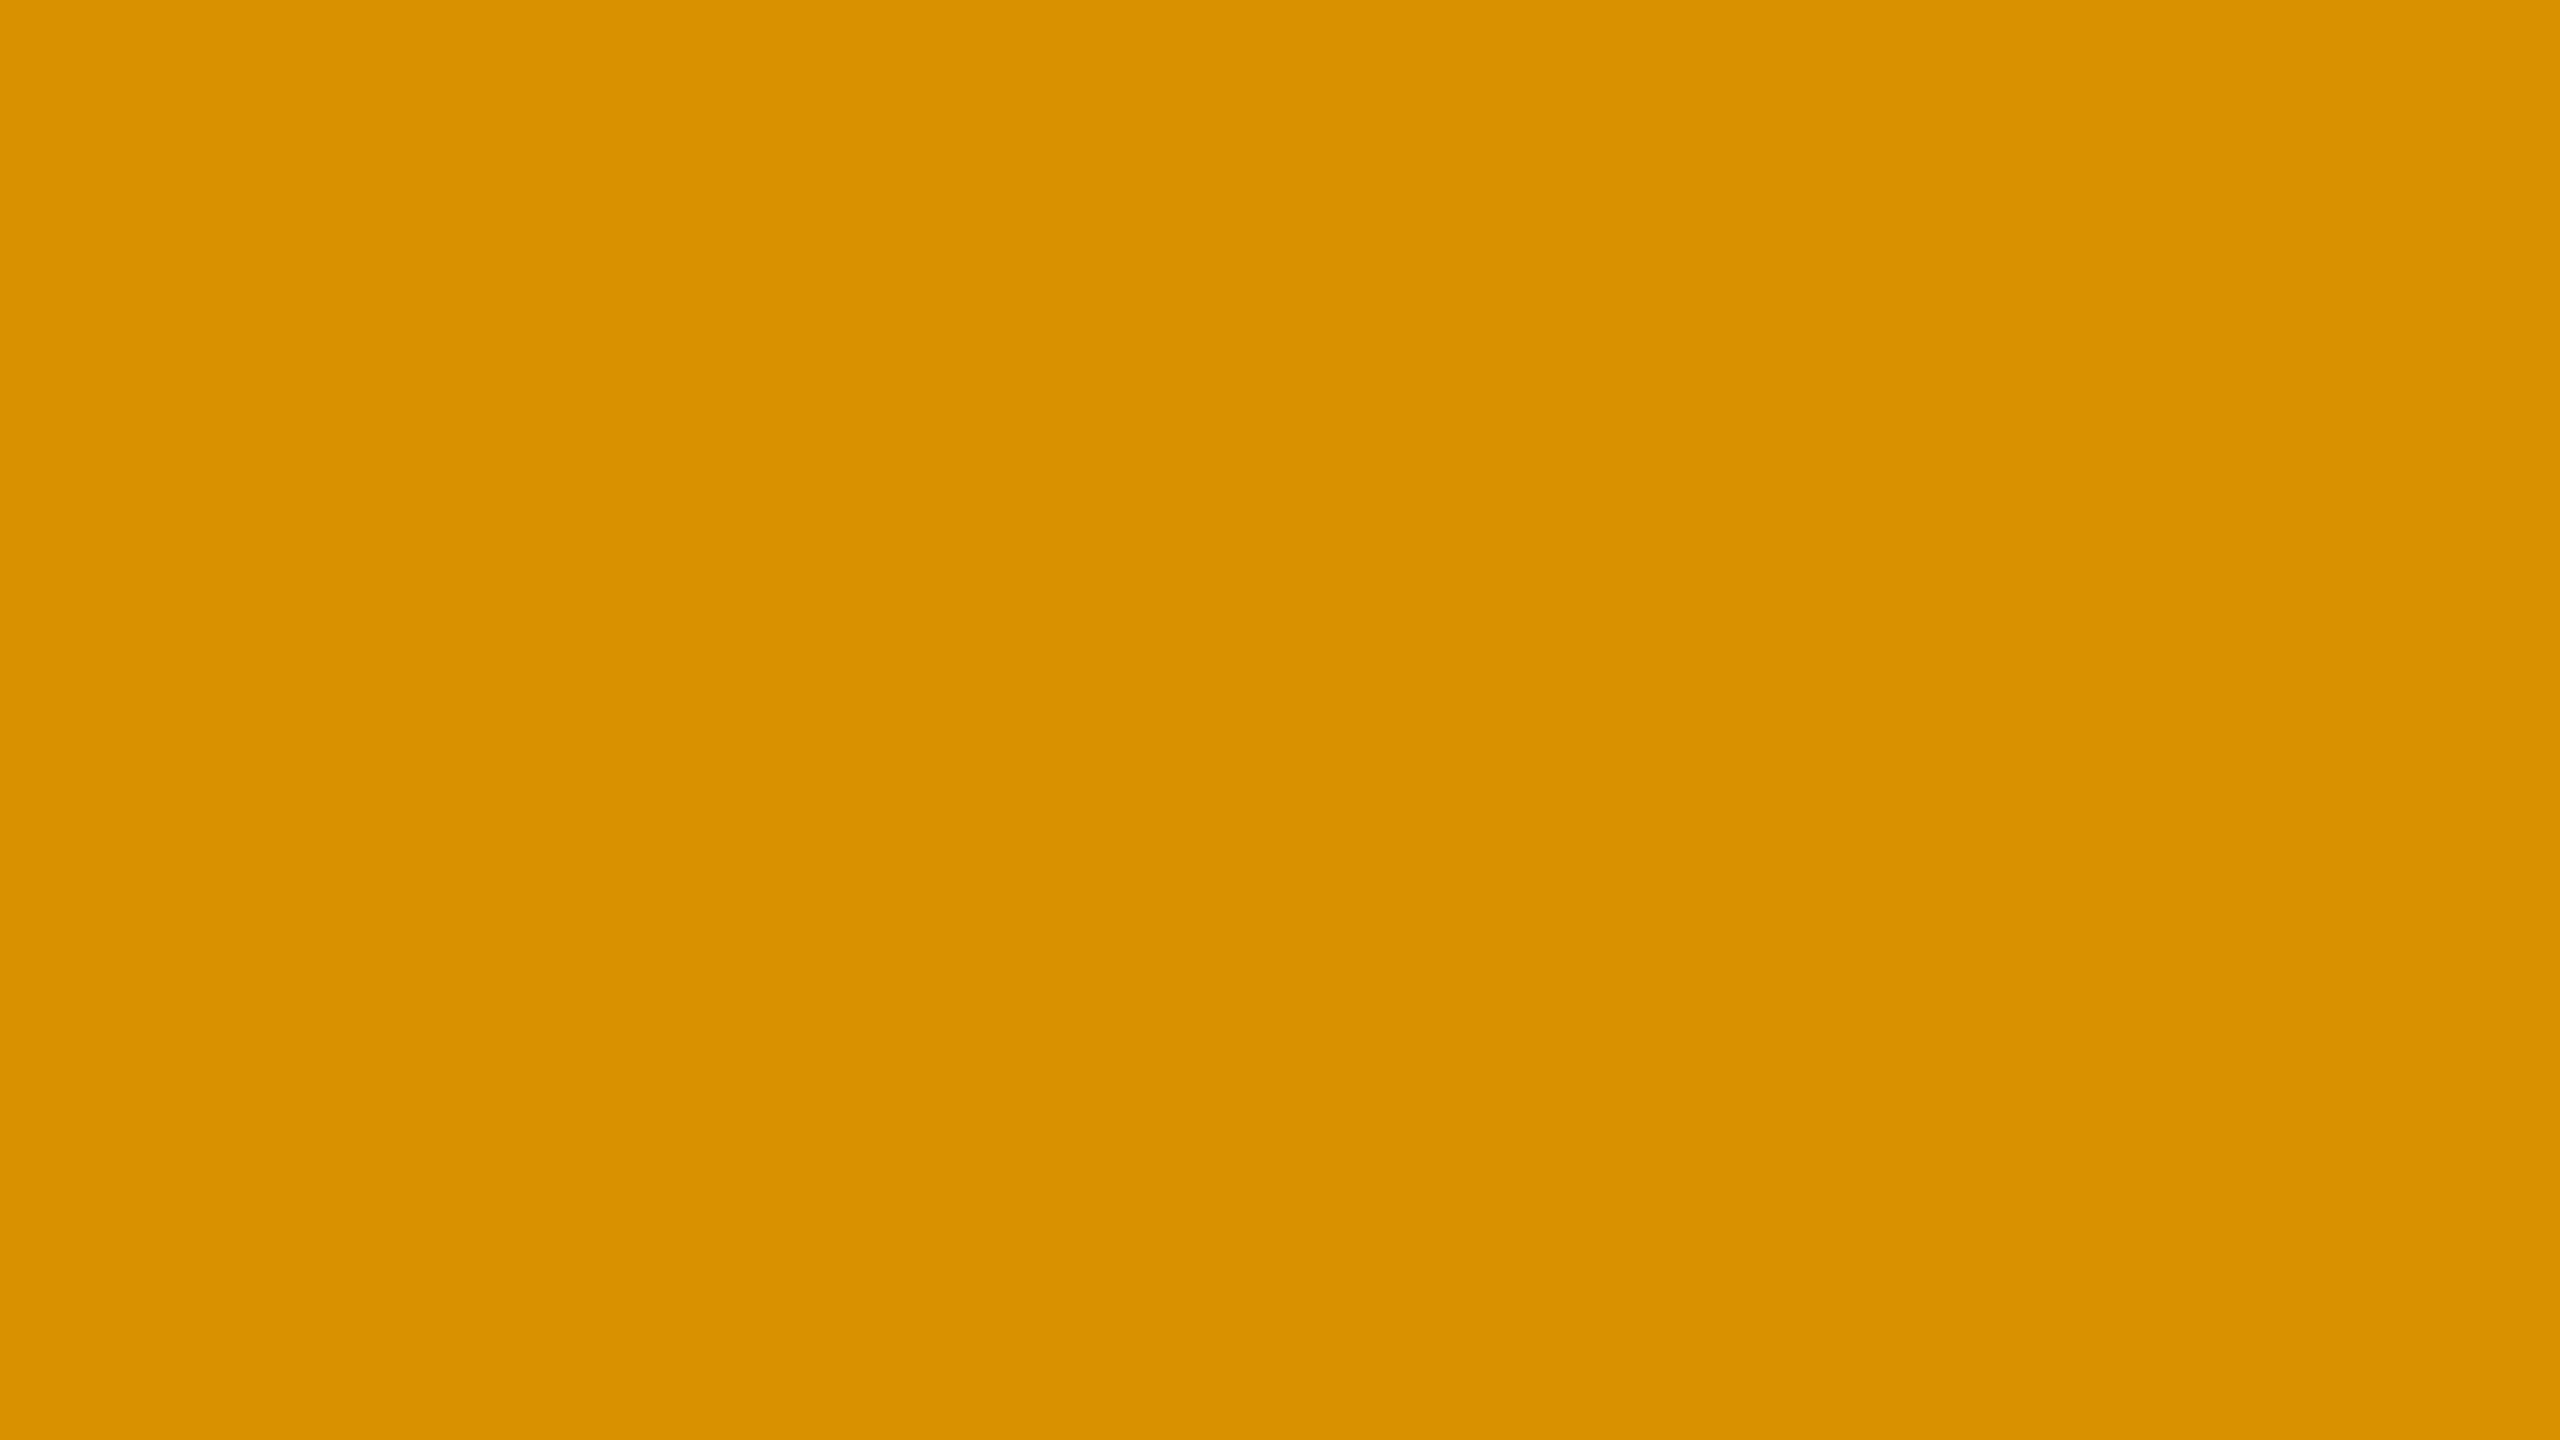 2560x1440 Harvest Gold Solid Color Background